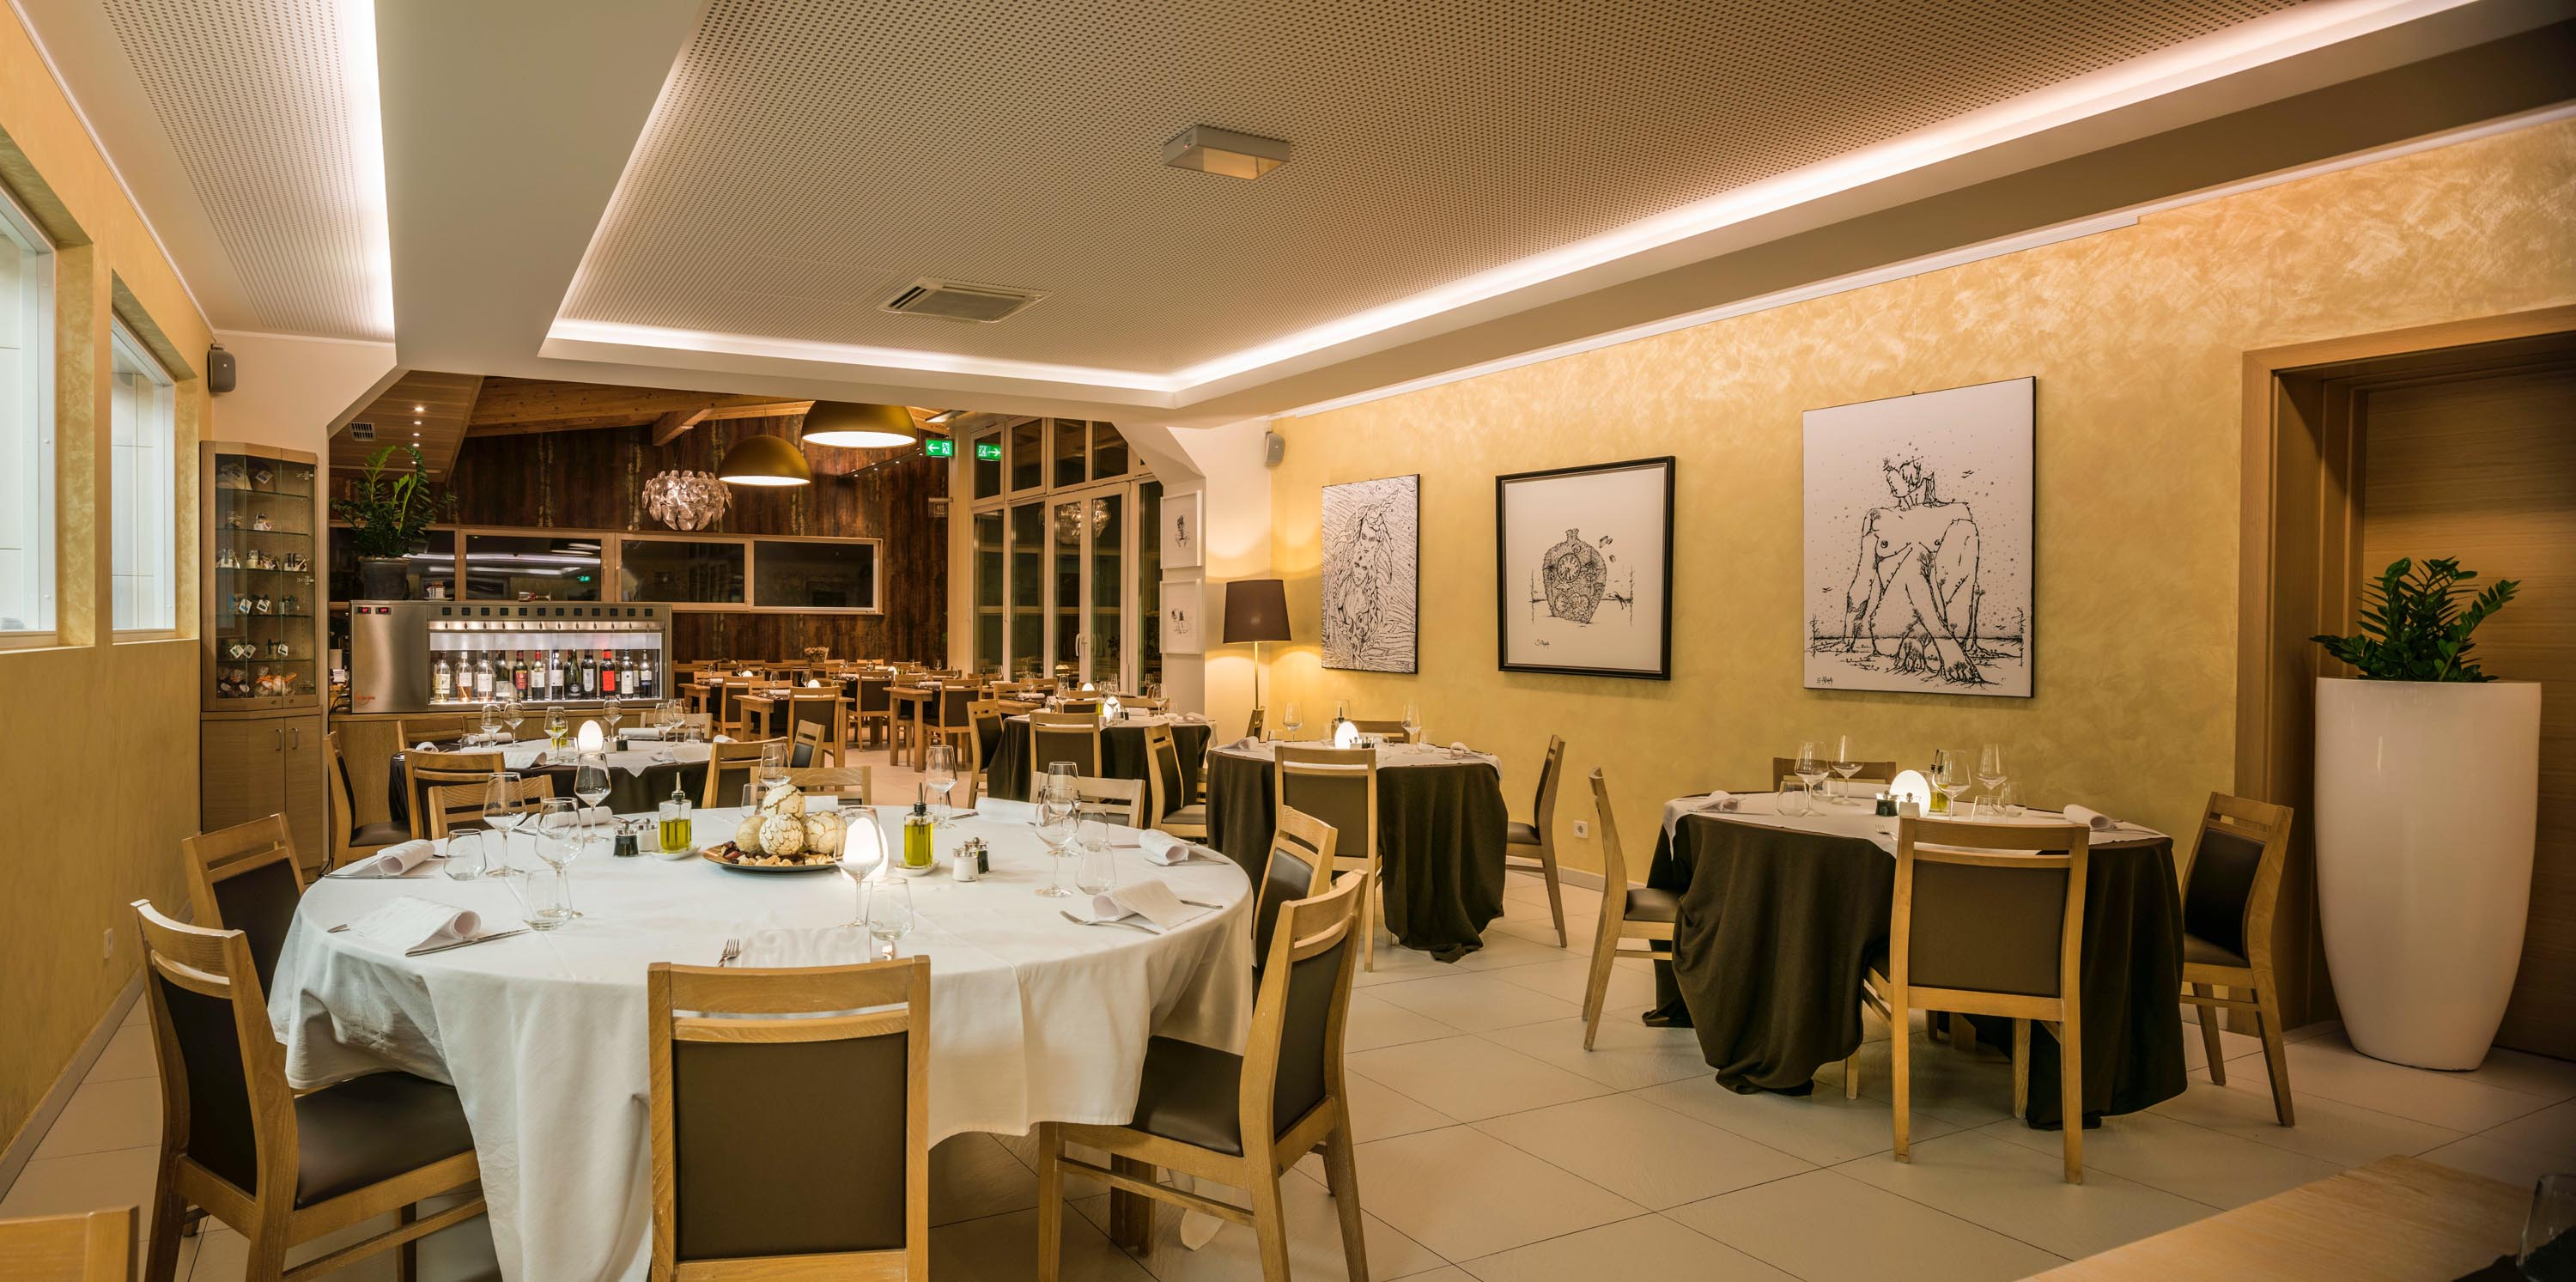 Tables in a restaurant with paintings on the walls